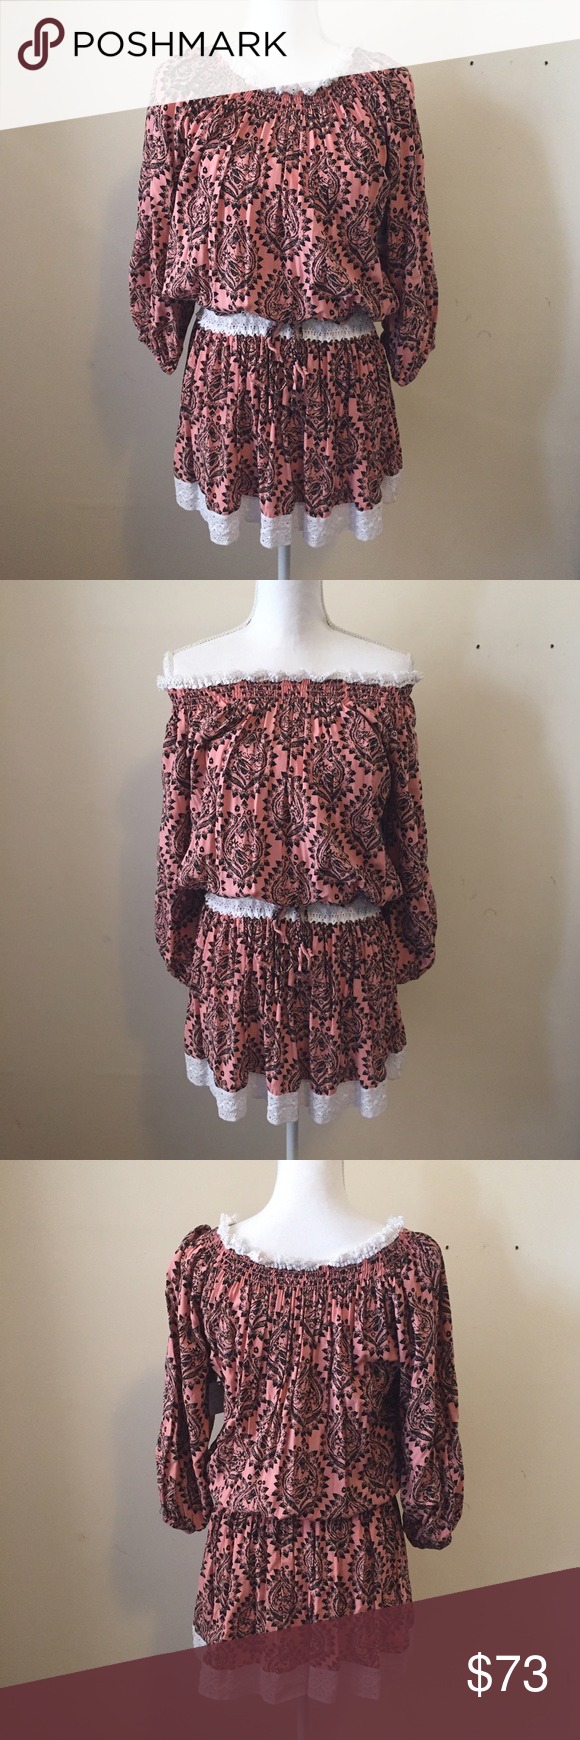 NWT Free People Coral Peasant Dress NWT Free People peasant dress in coral and black with white lace detailing at shoulder, waist, and hem. Elastic waist with drawstring. Top can be worn on or off shoulders.  Dress is 100% rayon with 100% cotton lining.  Brand new with tags. Size small. Free People Dresses Mini